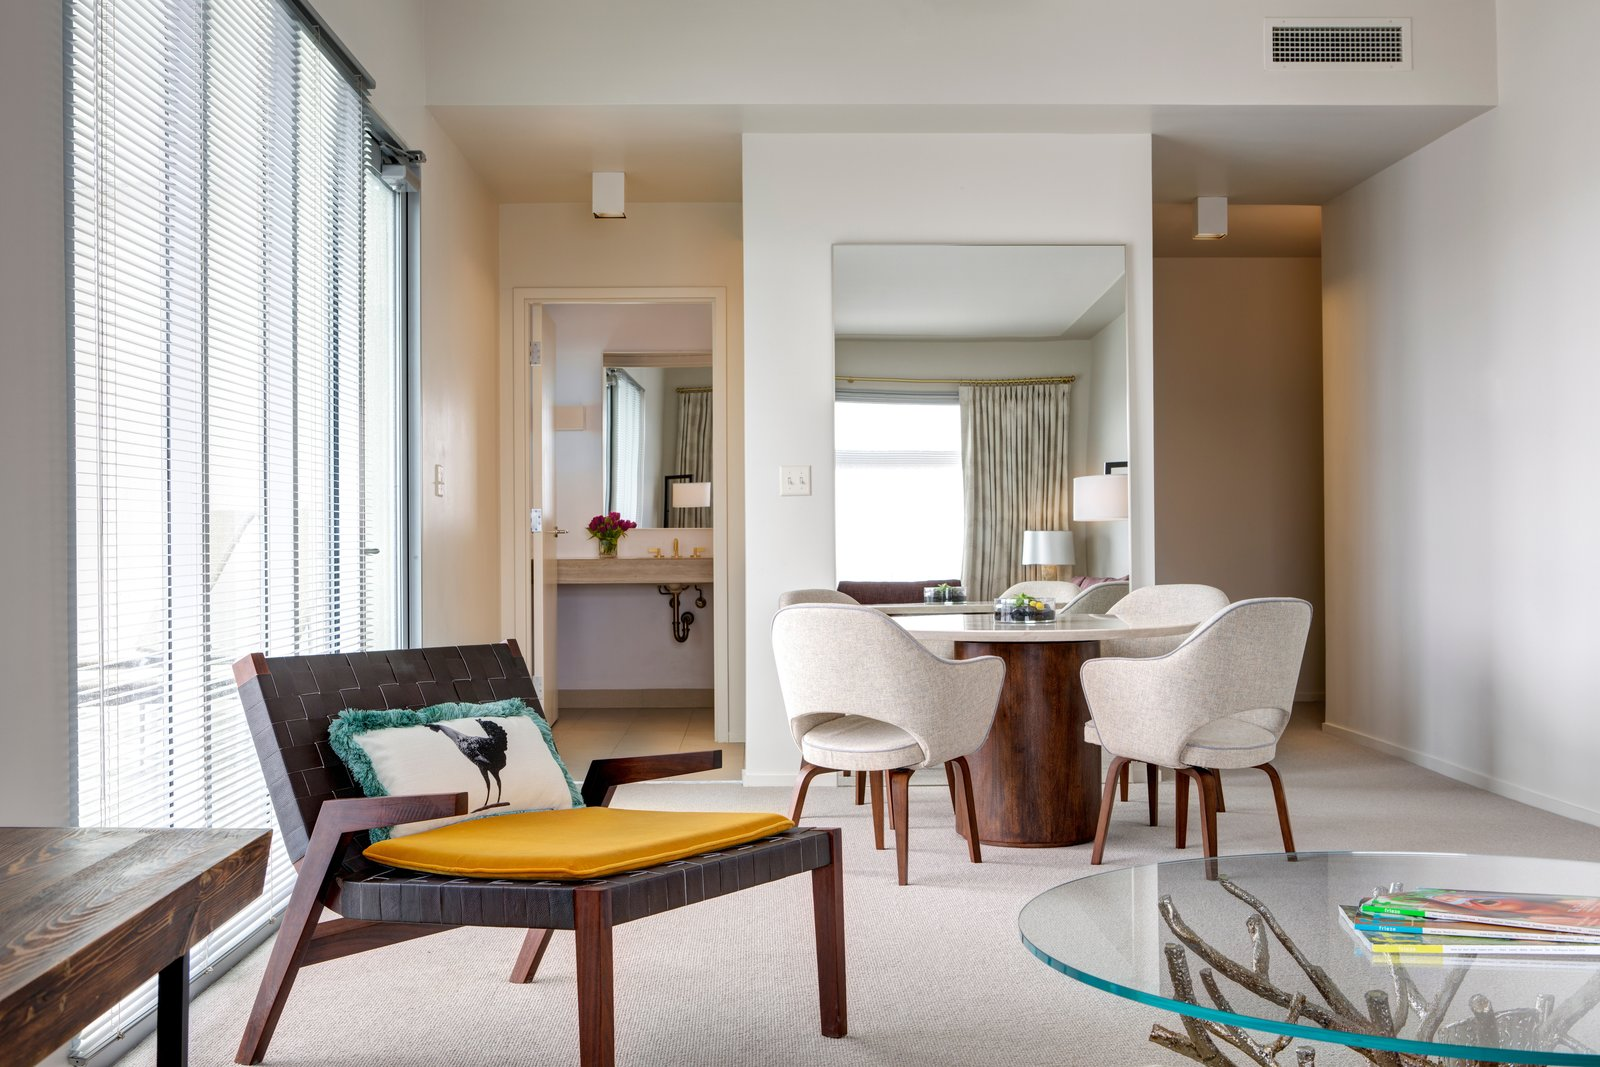 Dining Room, Table, Carpet Floor, Ceiling Lighting, and Chair 104 rooms with six room types are designed by Deborah Berke Partners with a residential feel.  Photo 7 of 9 in Head to Arkansas for What May Be America's Coolest Art and Design Hotel